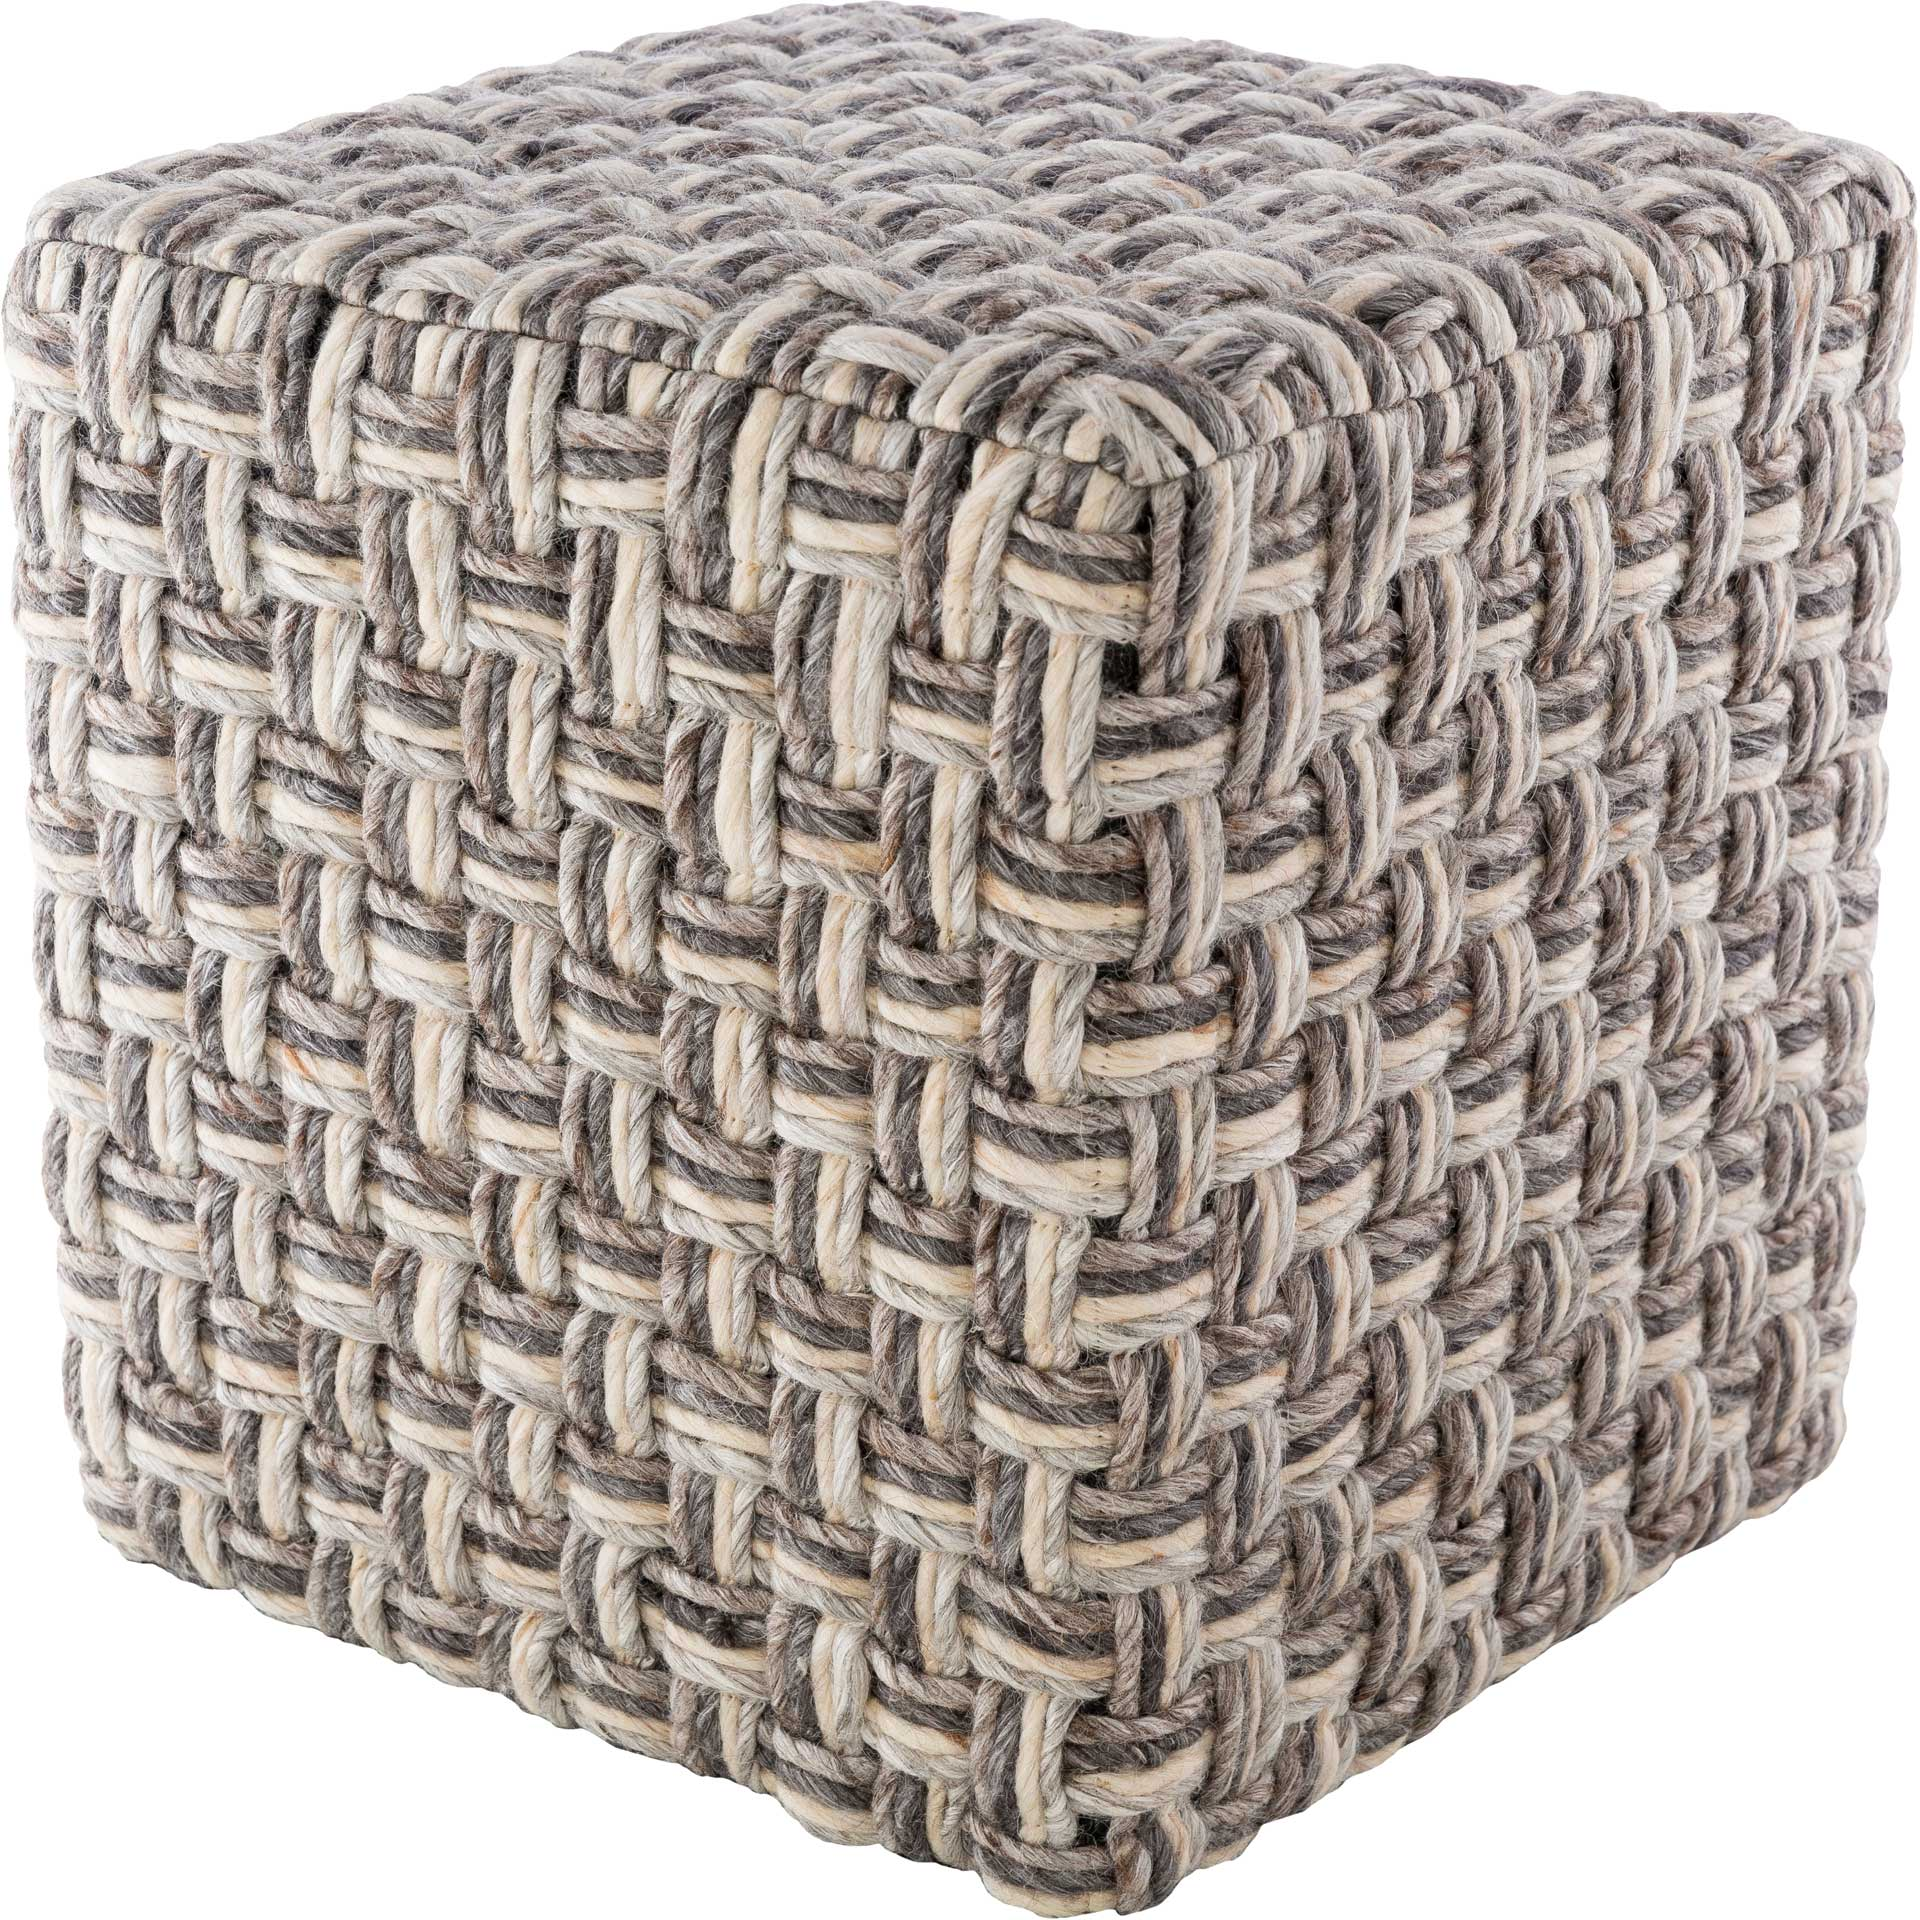 Colton Pouf Charcoal/Camel/Light Gray